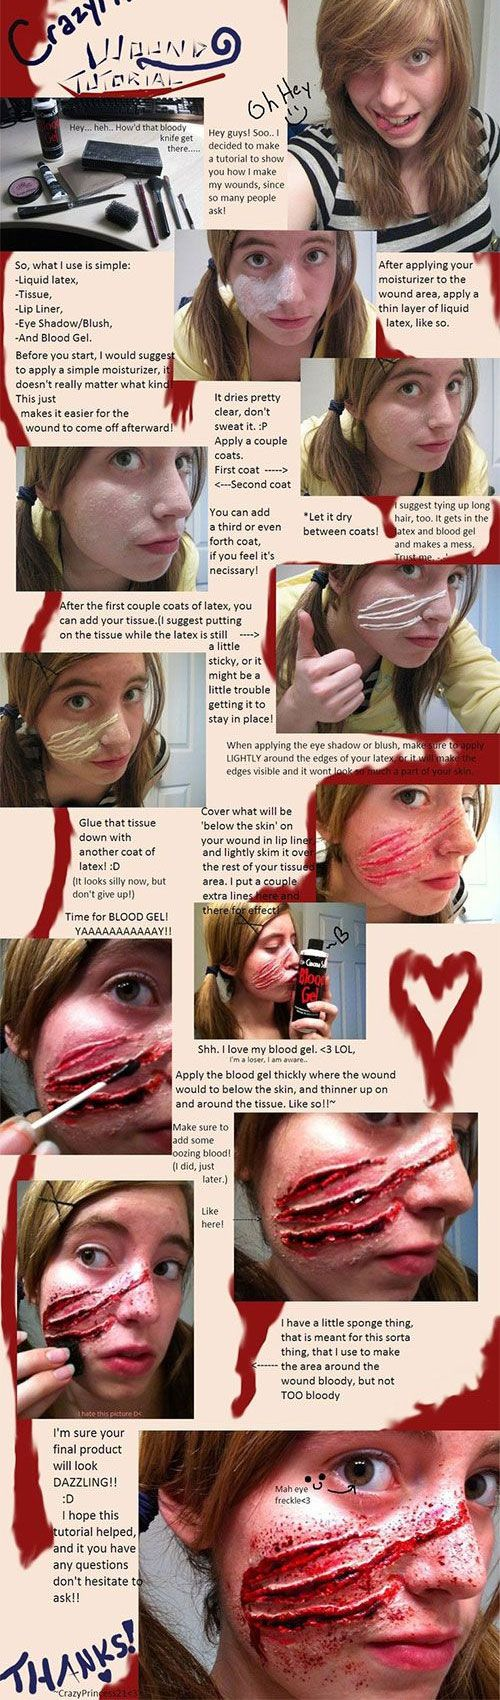 So, if you look at Halloween as the ultimate day of gore, horror and scaring your friends, look no further than the following makeup hacks that are so gross, SO disgusting that you'll have your BFFs gagging in no time. But don't worry — you'll be the one LOLing on the inside 'cause everything's totally fake!